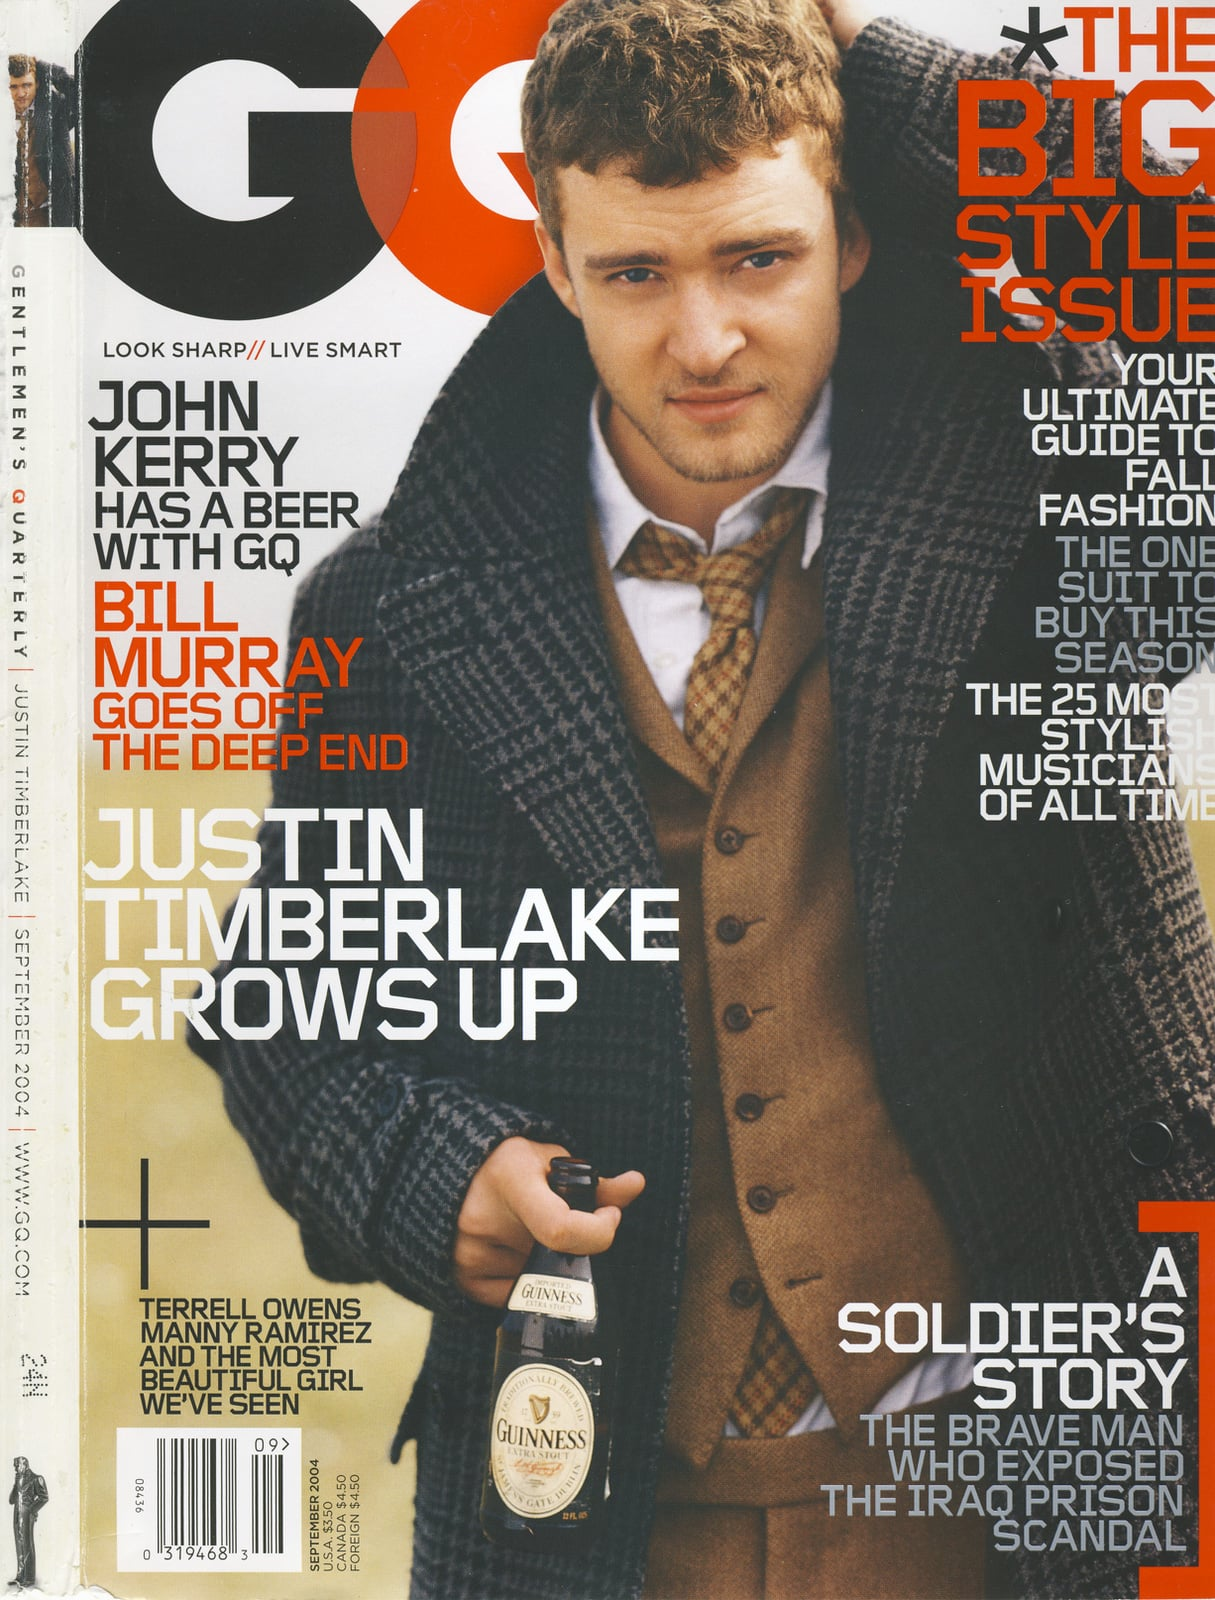 When his 2004 GQ cover hit newsstands.